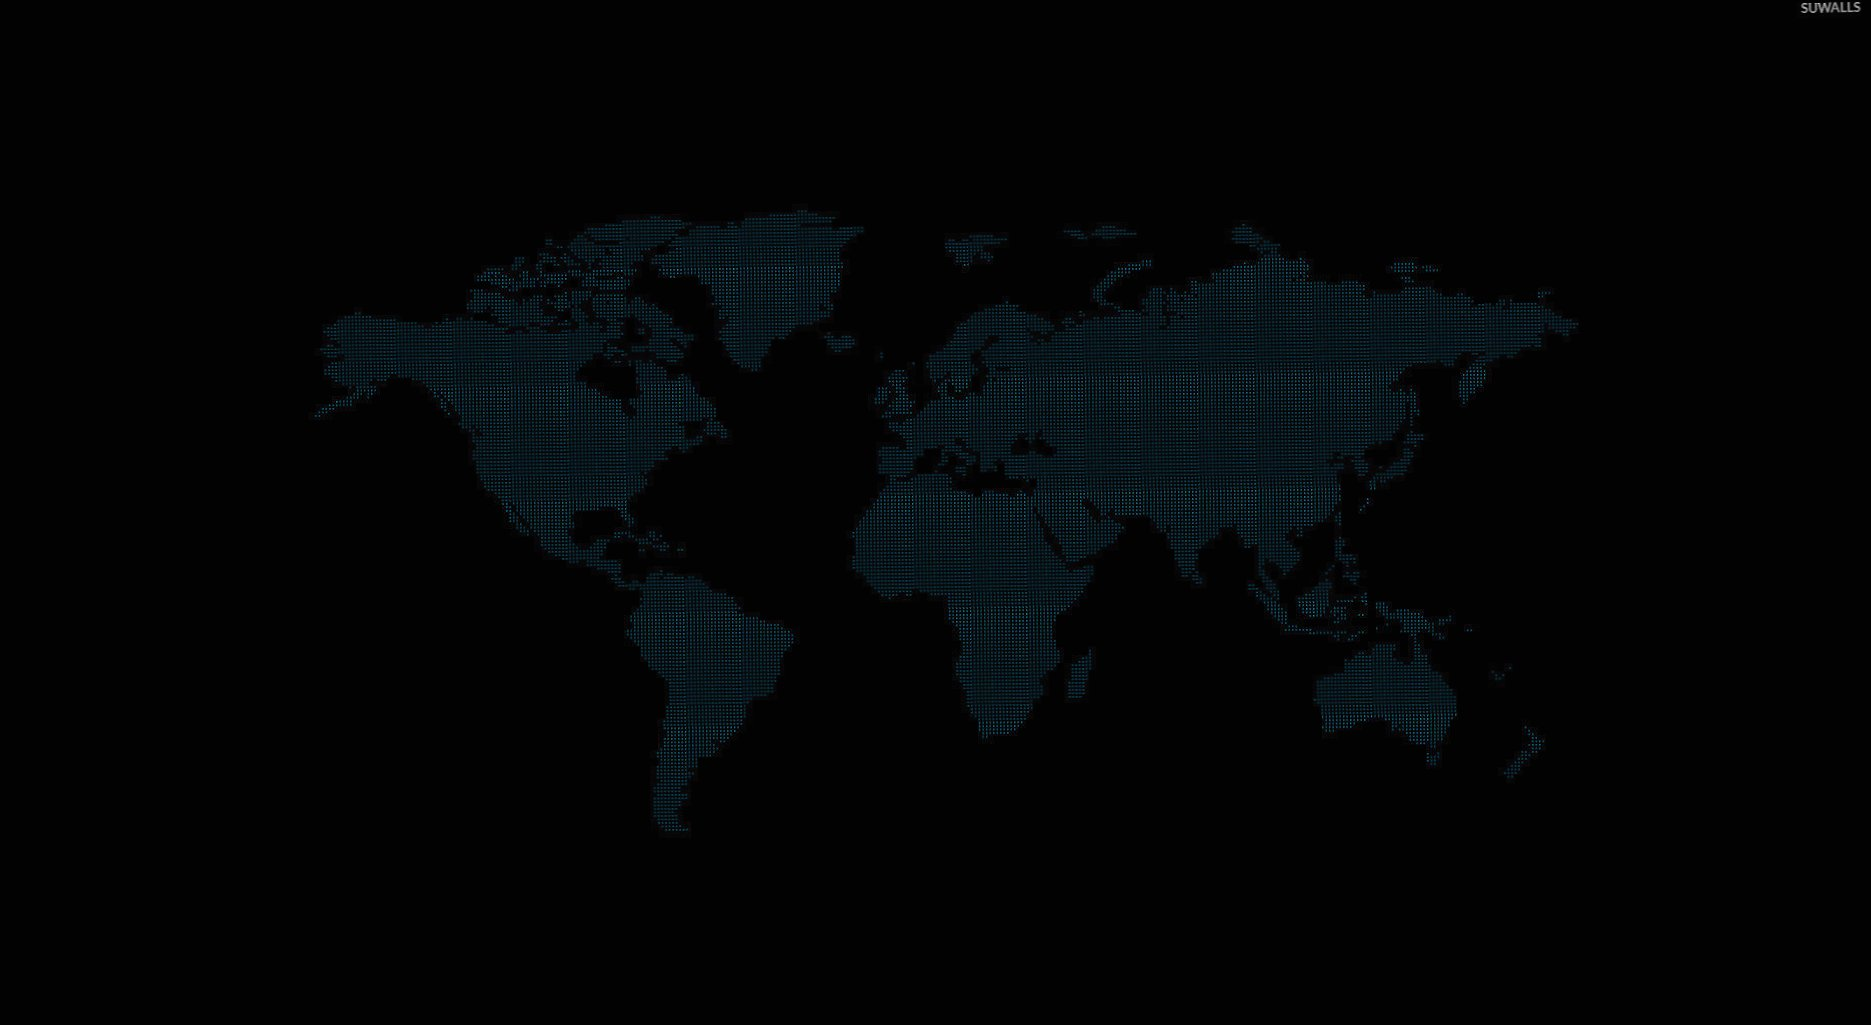 Minimalistic map of the world wallpapers HD quality